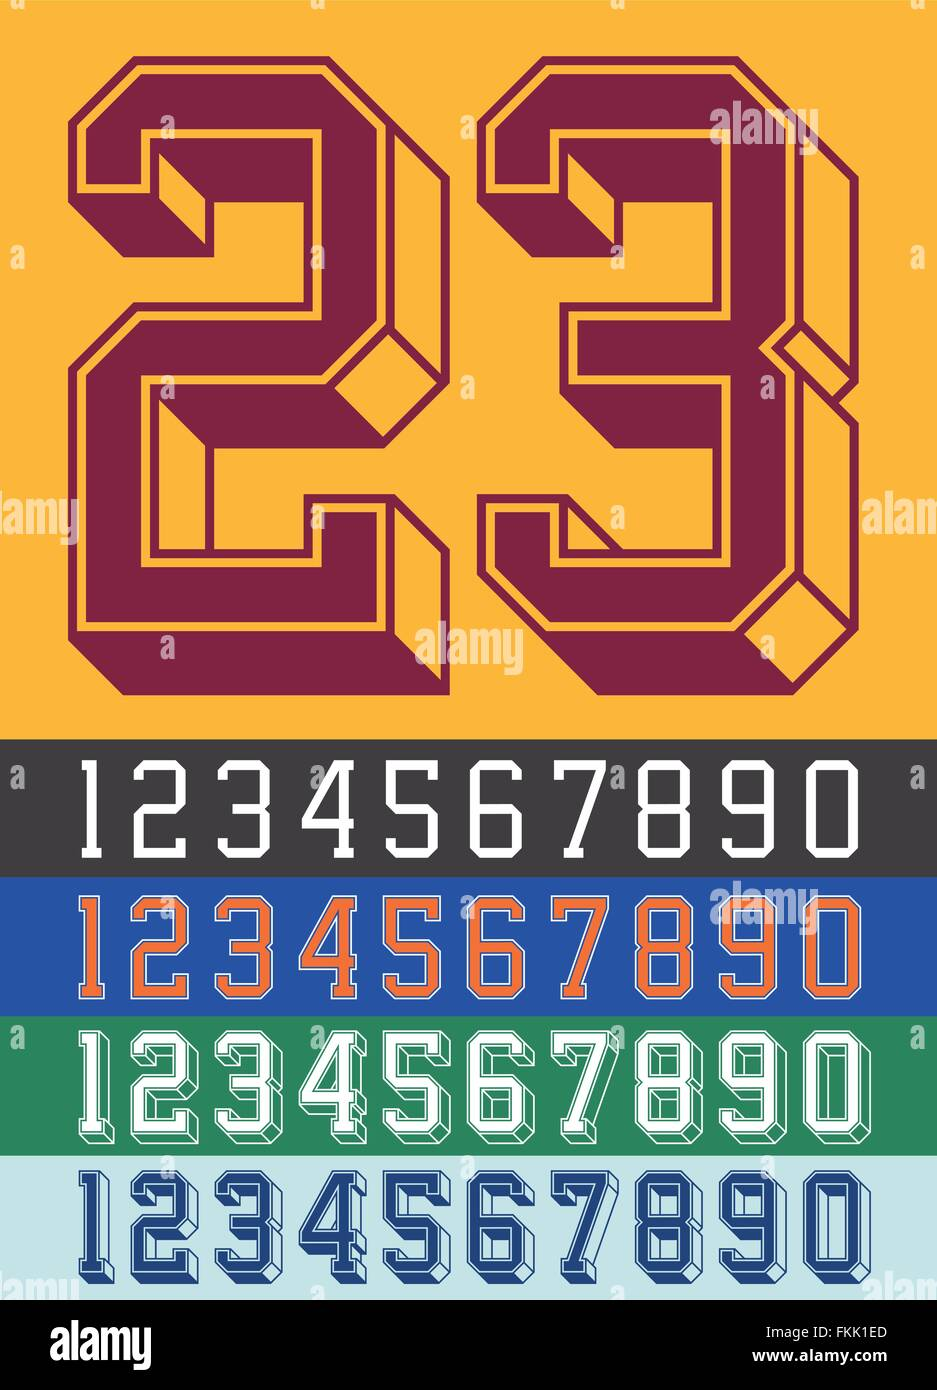 Soccer Jersey Numbers Stock Photos Amp Soccer Jersey Numbers